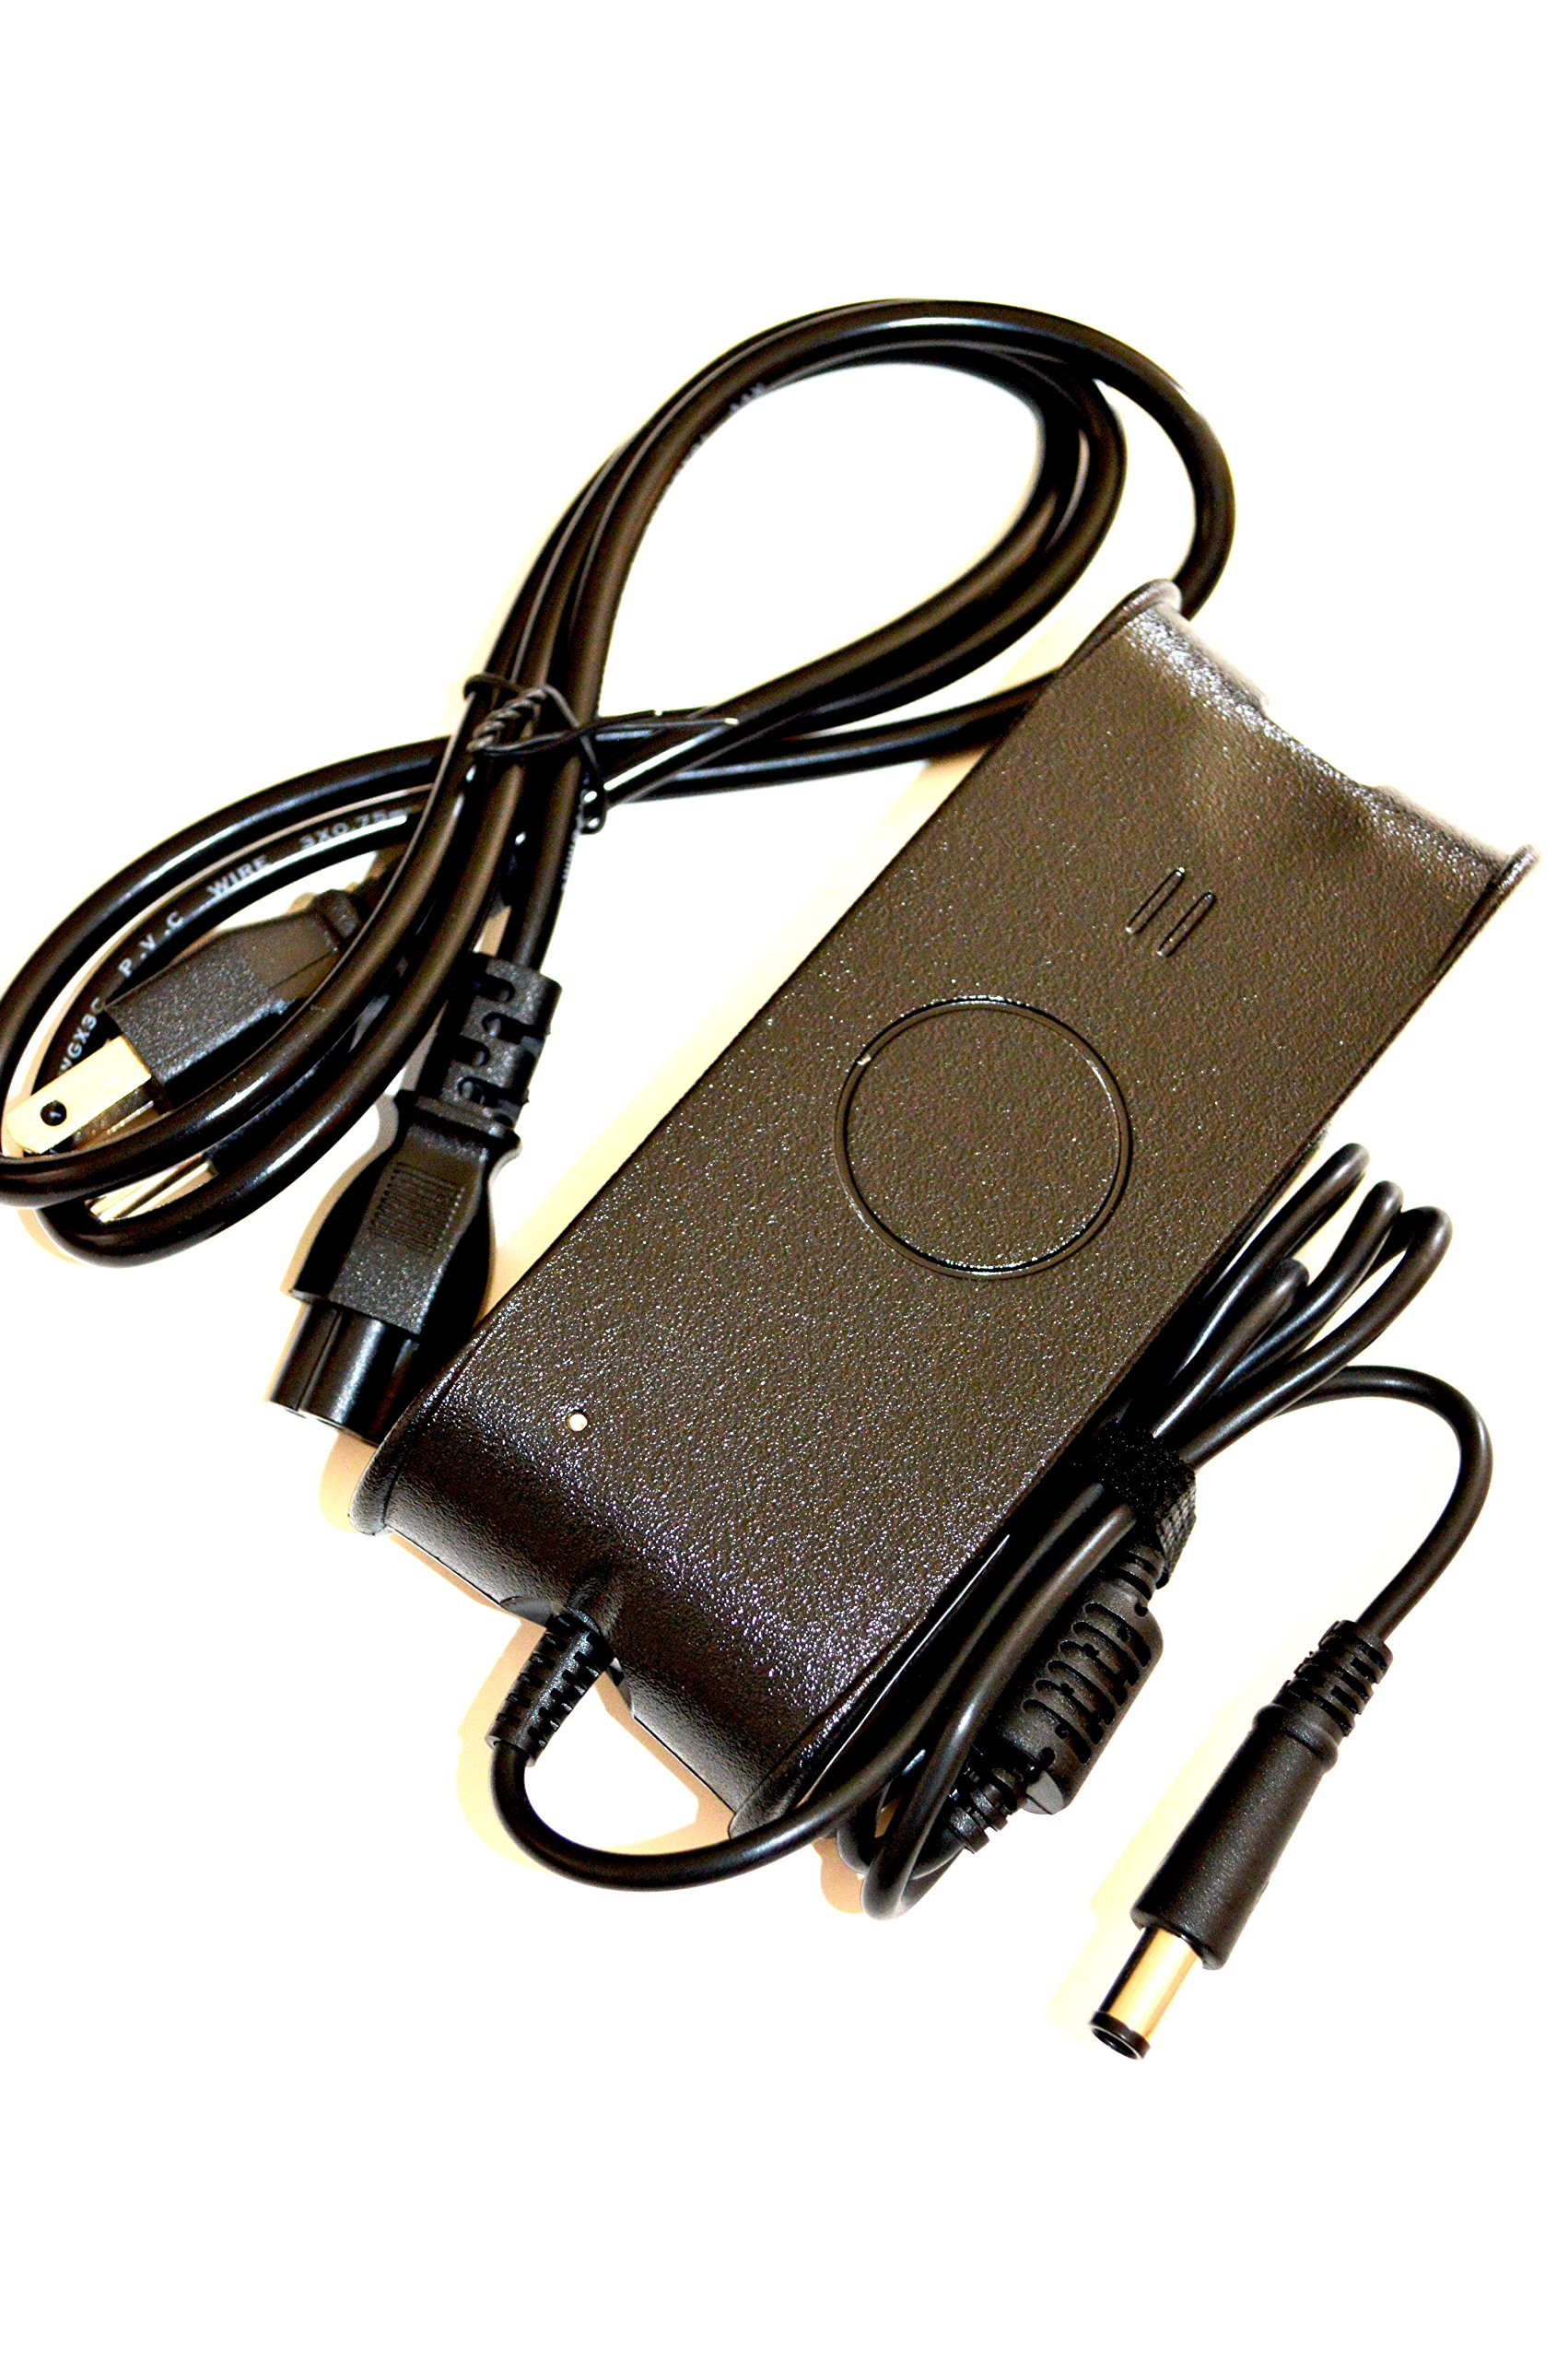 Ac Adapter Laptop Charger for DELL Latitude E6430 ATG, Latitude E6430s, Latitude 6340u DELL Latitude E5510,Latitude E6400,Latitude E6400 ATG Ultrabook Laptop Notebook Battery Power Supply Cord Plug